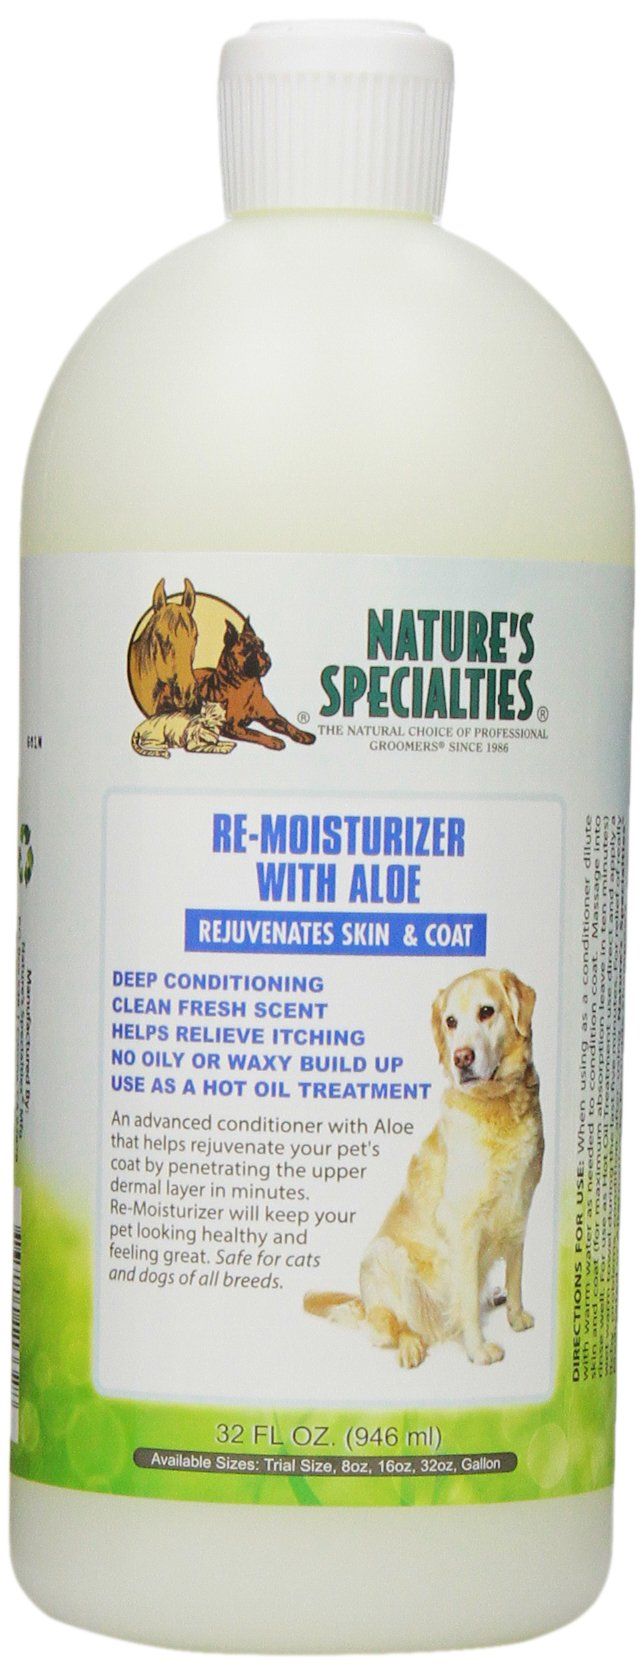 Nature's Specialties Aloe Remoisturizer Pet Conditioner, 32-Ounce by Nature's Specialties Mfg